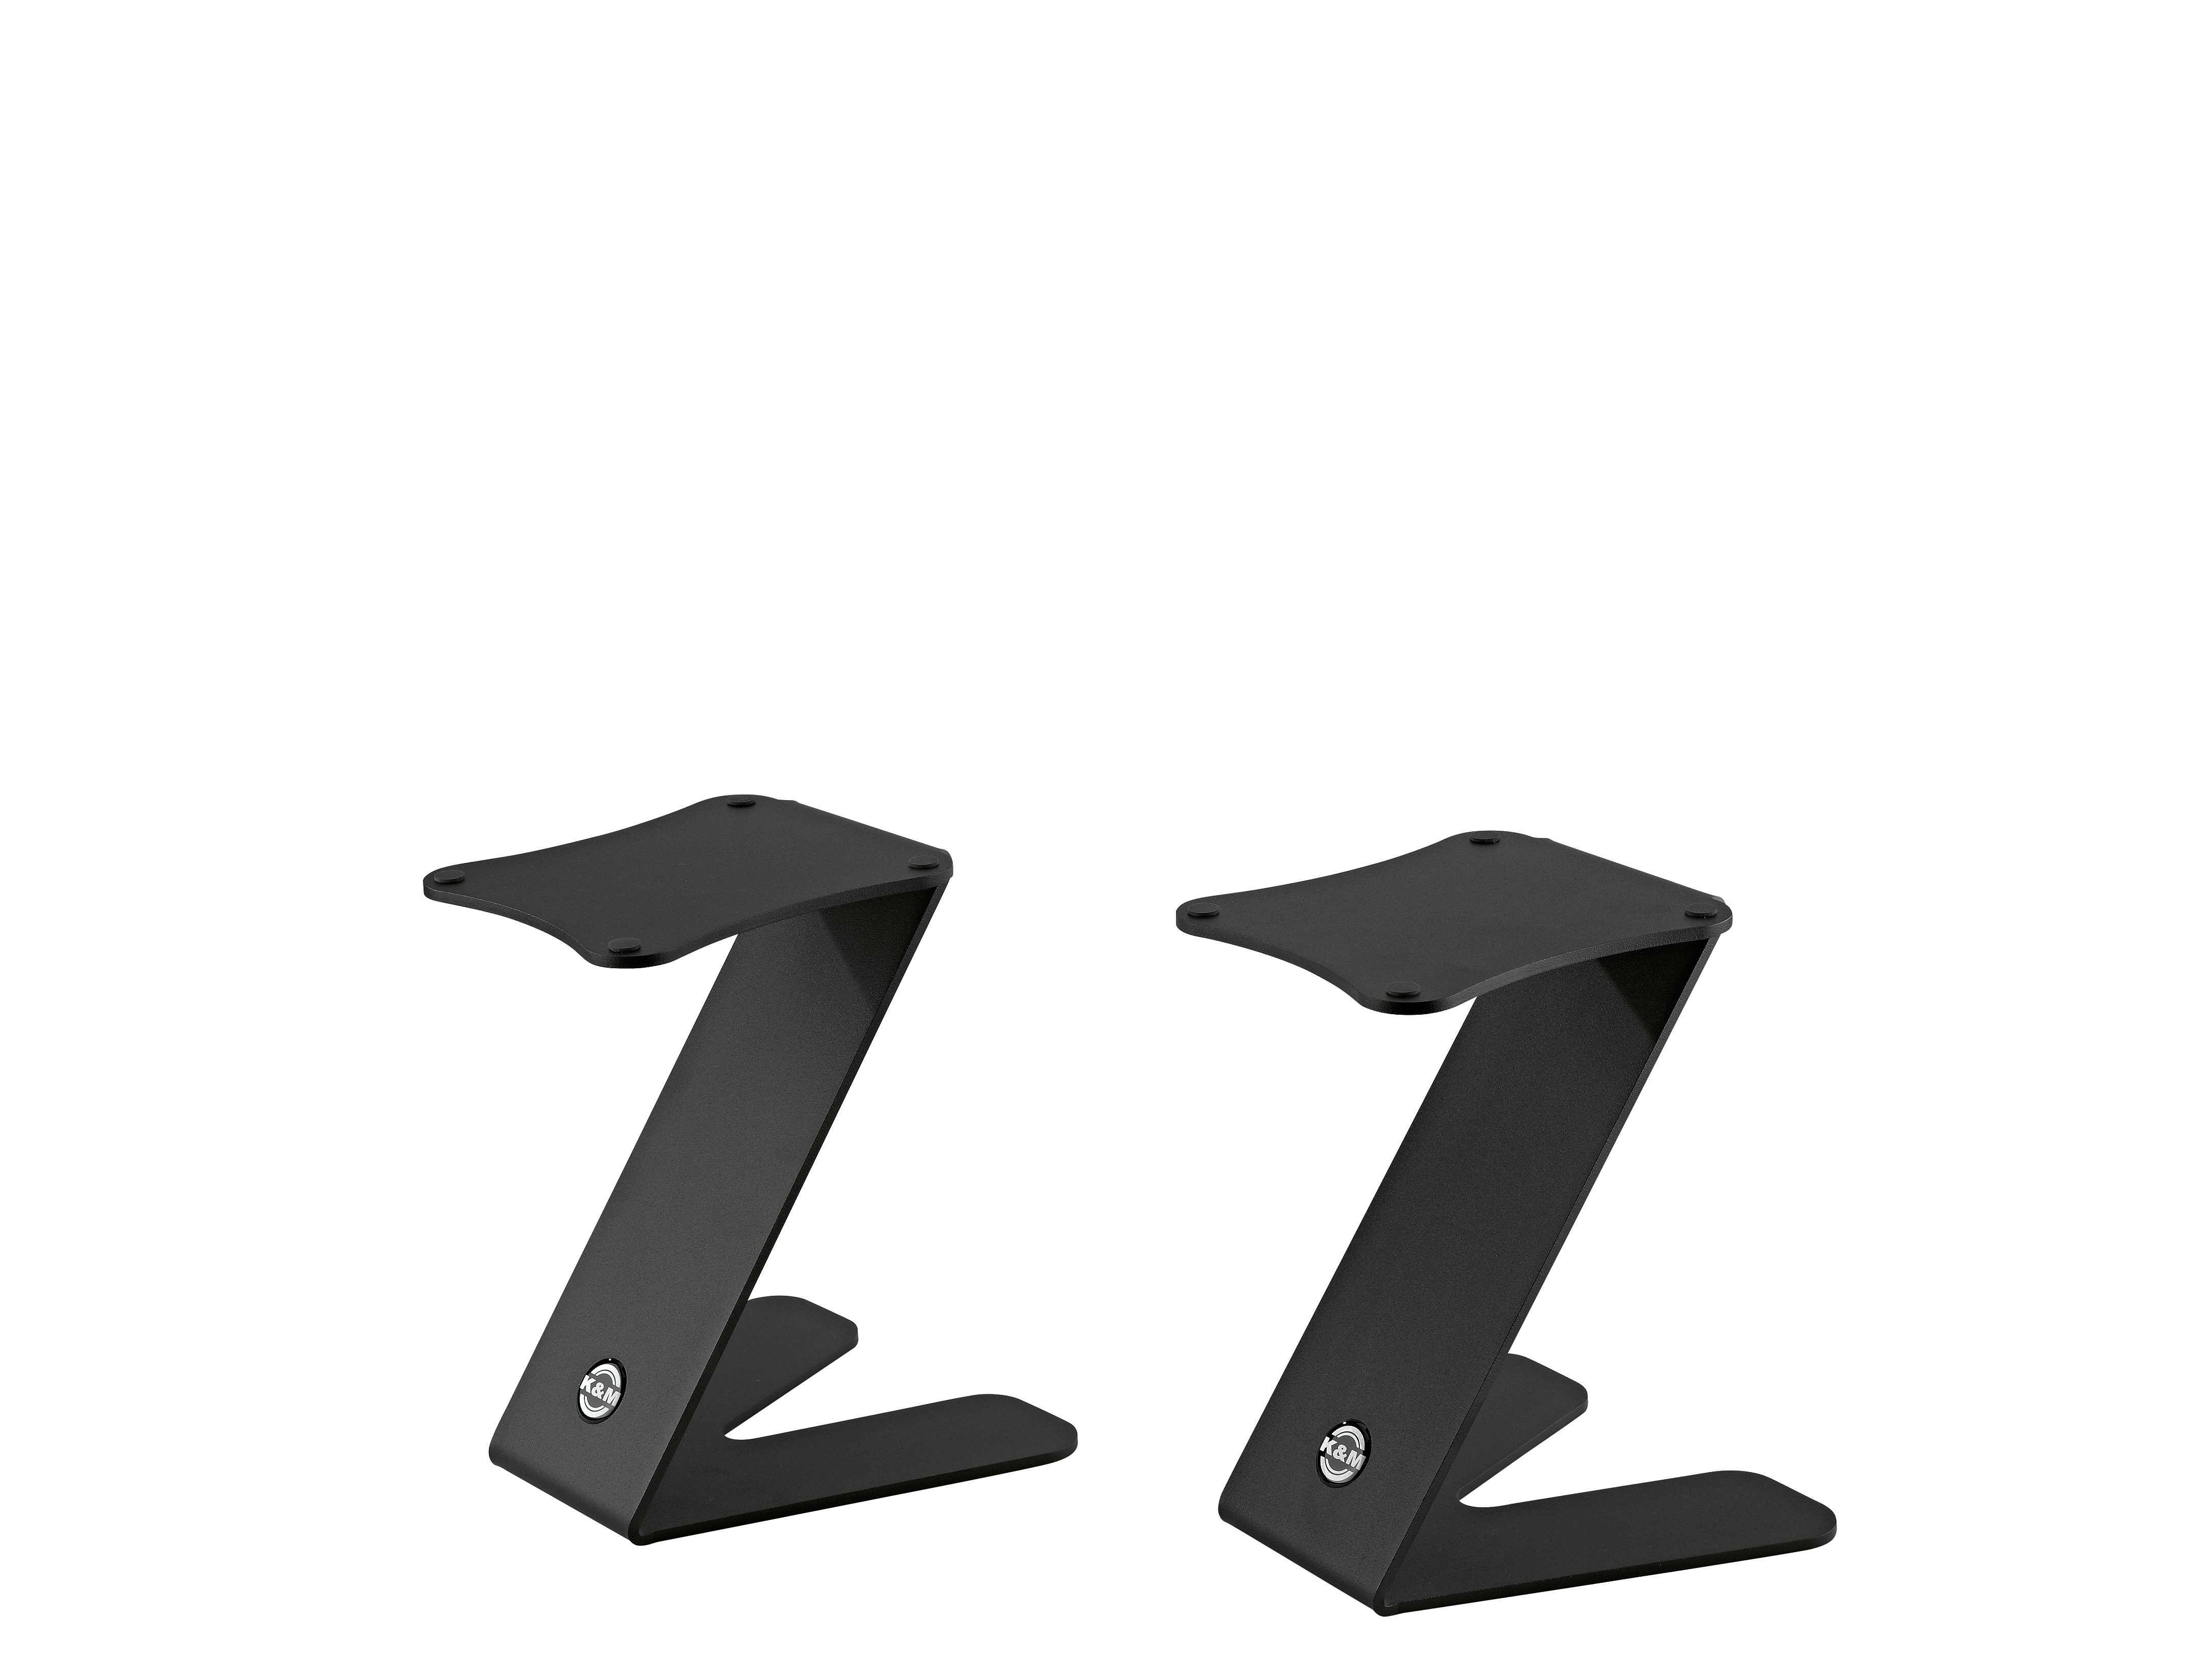 K&M Table monitor stand Z-Stand structured Black